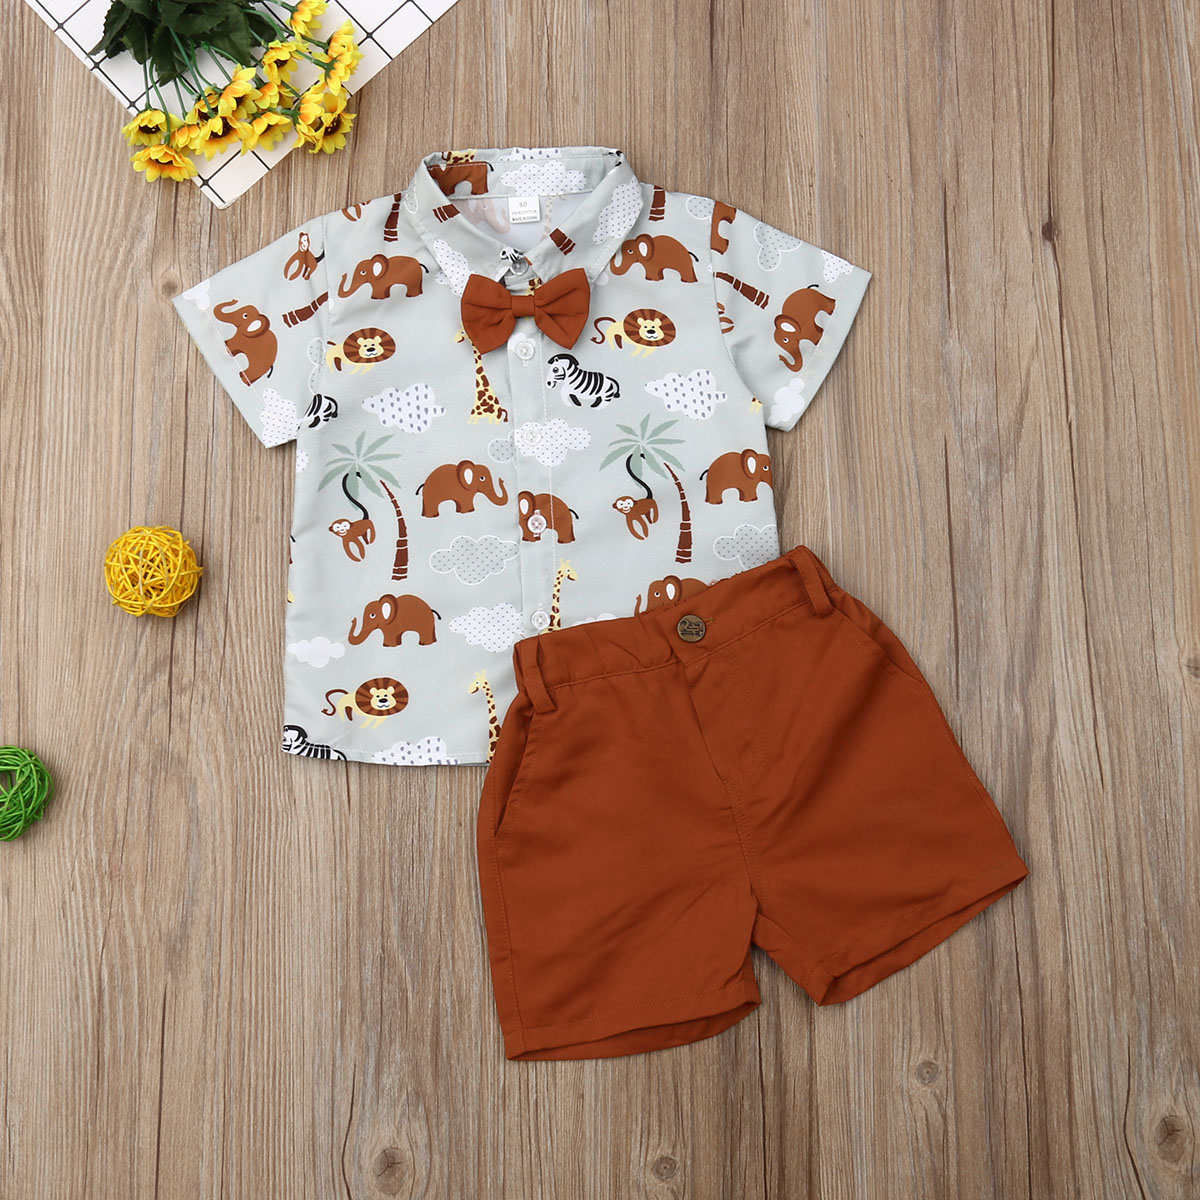 Pudcoco Summer Toddler Baby Boy Clothes Cute Animals Print Shirt Tops Short Pants 2Pcs Outfits Gentleman Baby Casual Clothes